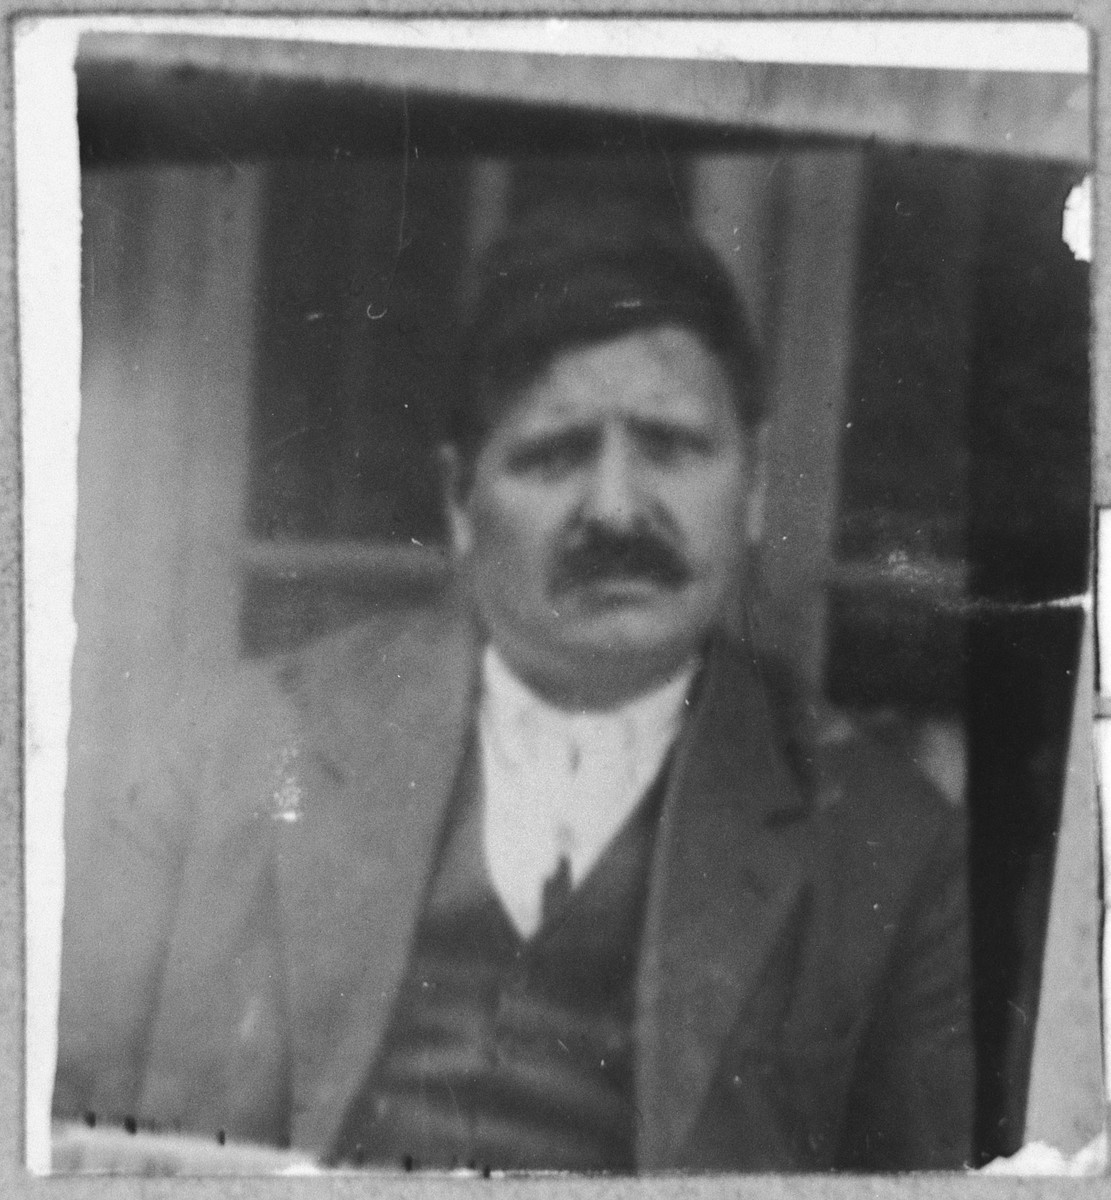 Portrait of Avram (M.) Massot.  He was a fruit merchant.  He lived at Zmayeva 16 in Bitola.